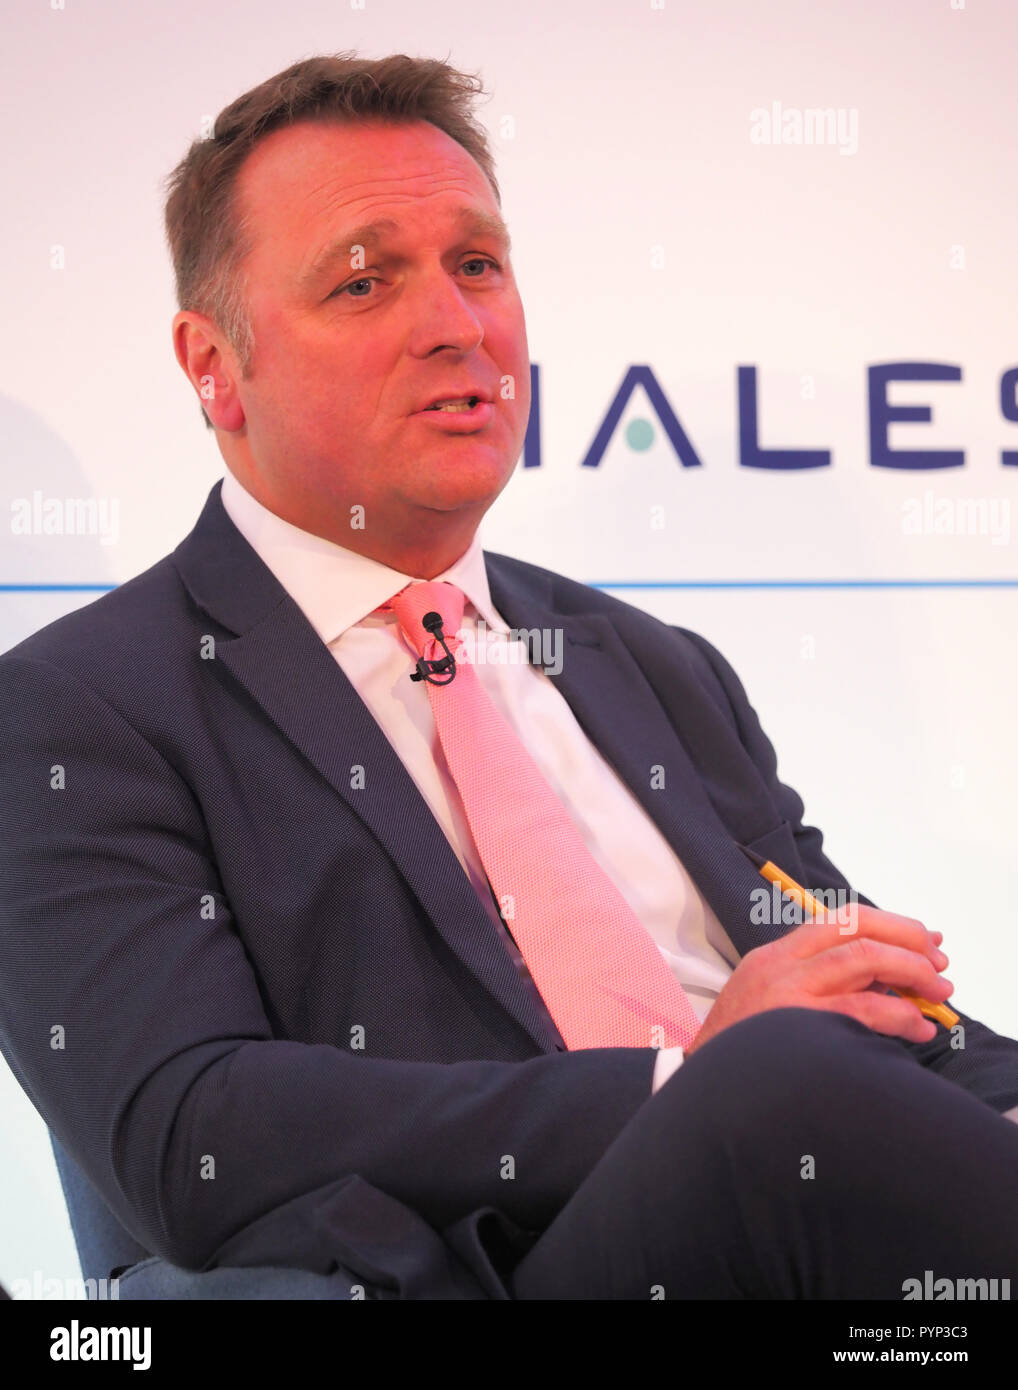 London, UK. 29th Oct, 2018. Derek Provan CEO of Aberdeen Glasgow and Southampton airports, speaking at the Airport Operators Conference being held at County Hall, London today (Mon) Credit: Finnbarr Webster/Alamy Live News - Stock Image